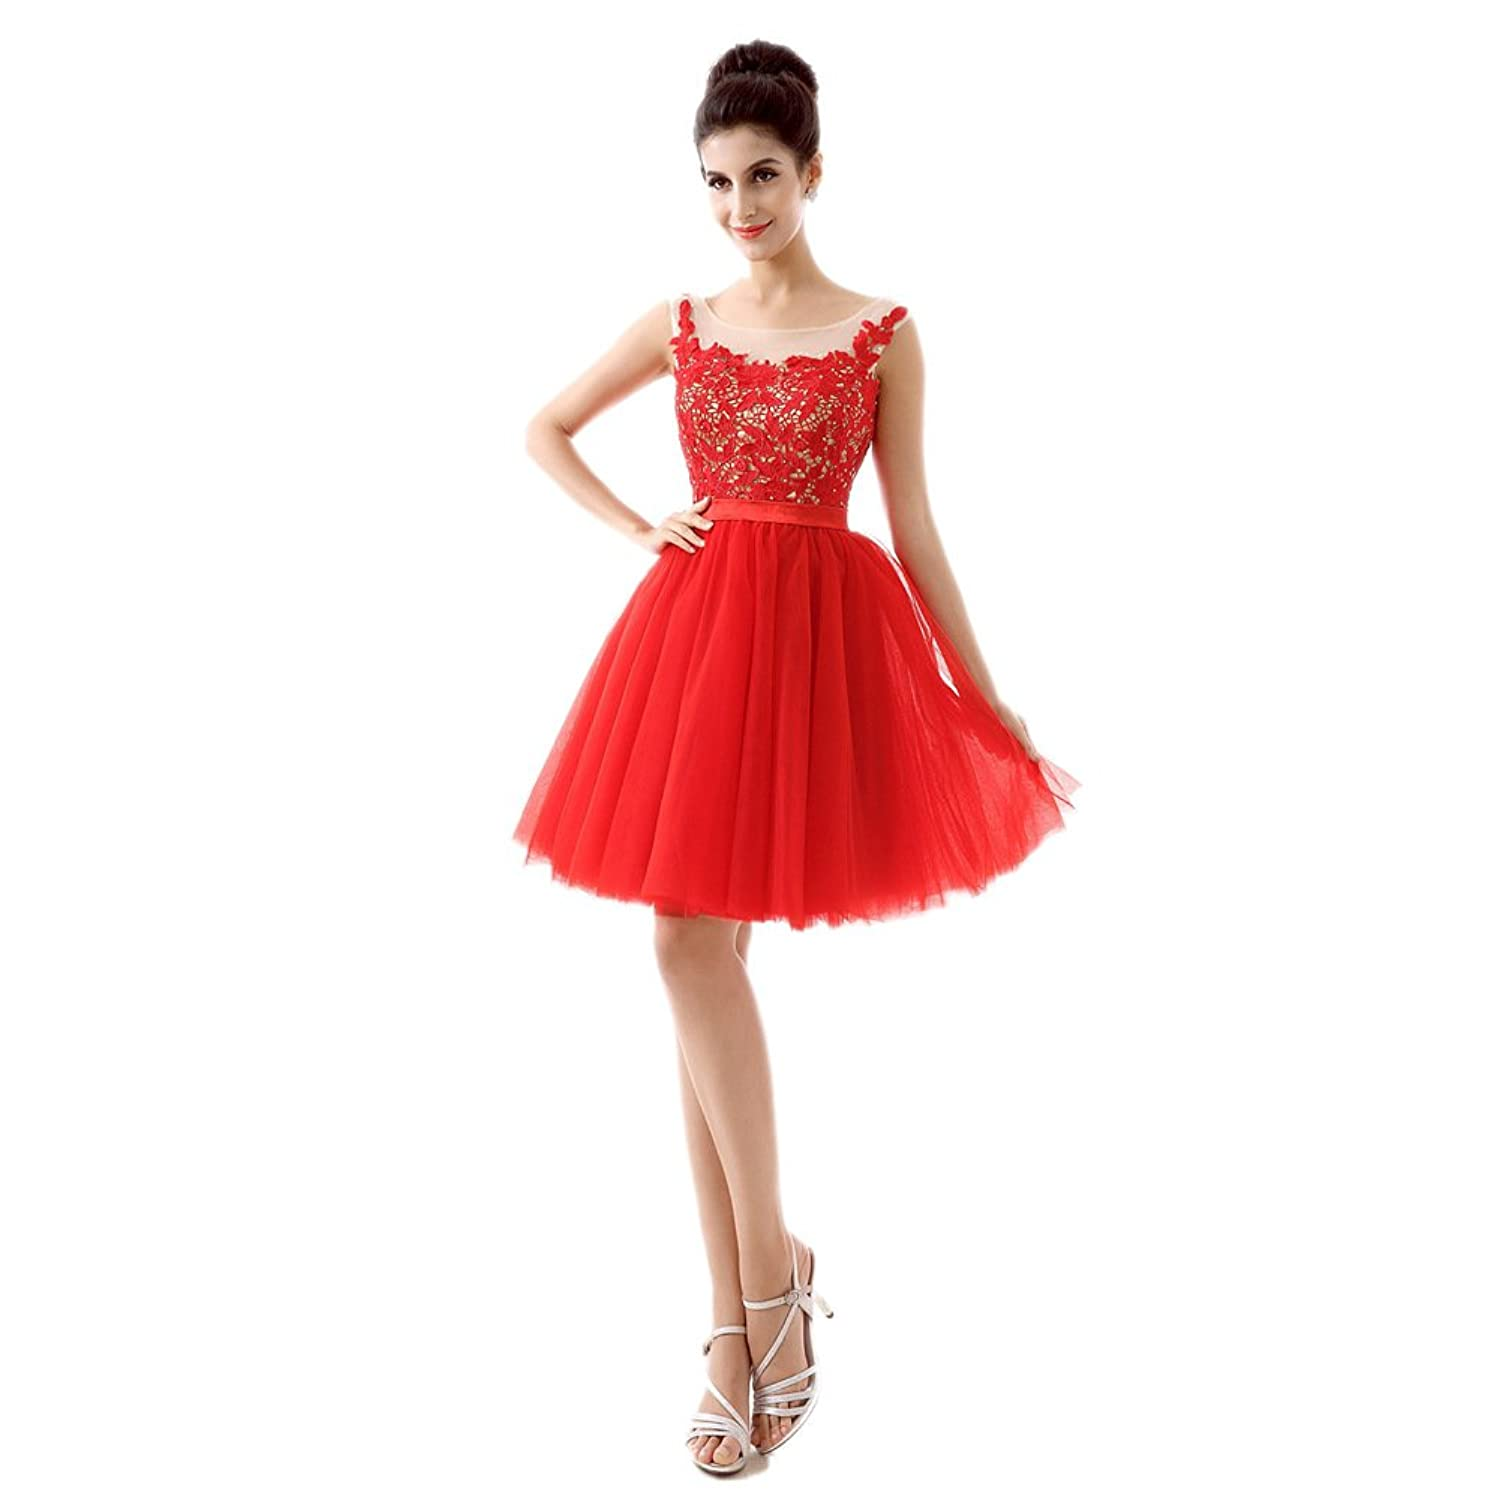 Ikerenwedding Women's Empire A-Line Knee Length Lace Tulle Homecoming Dress